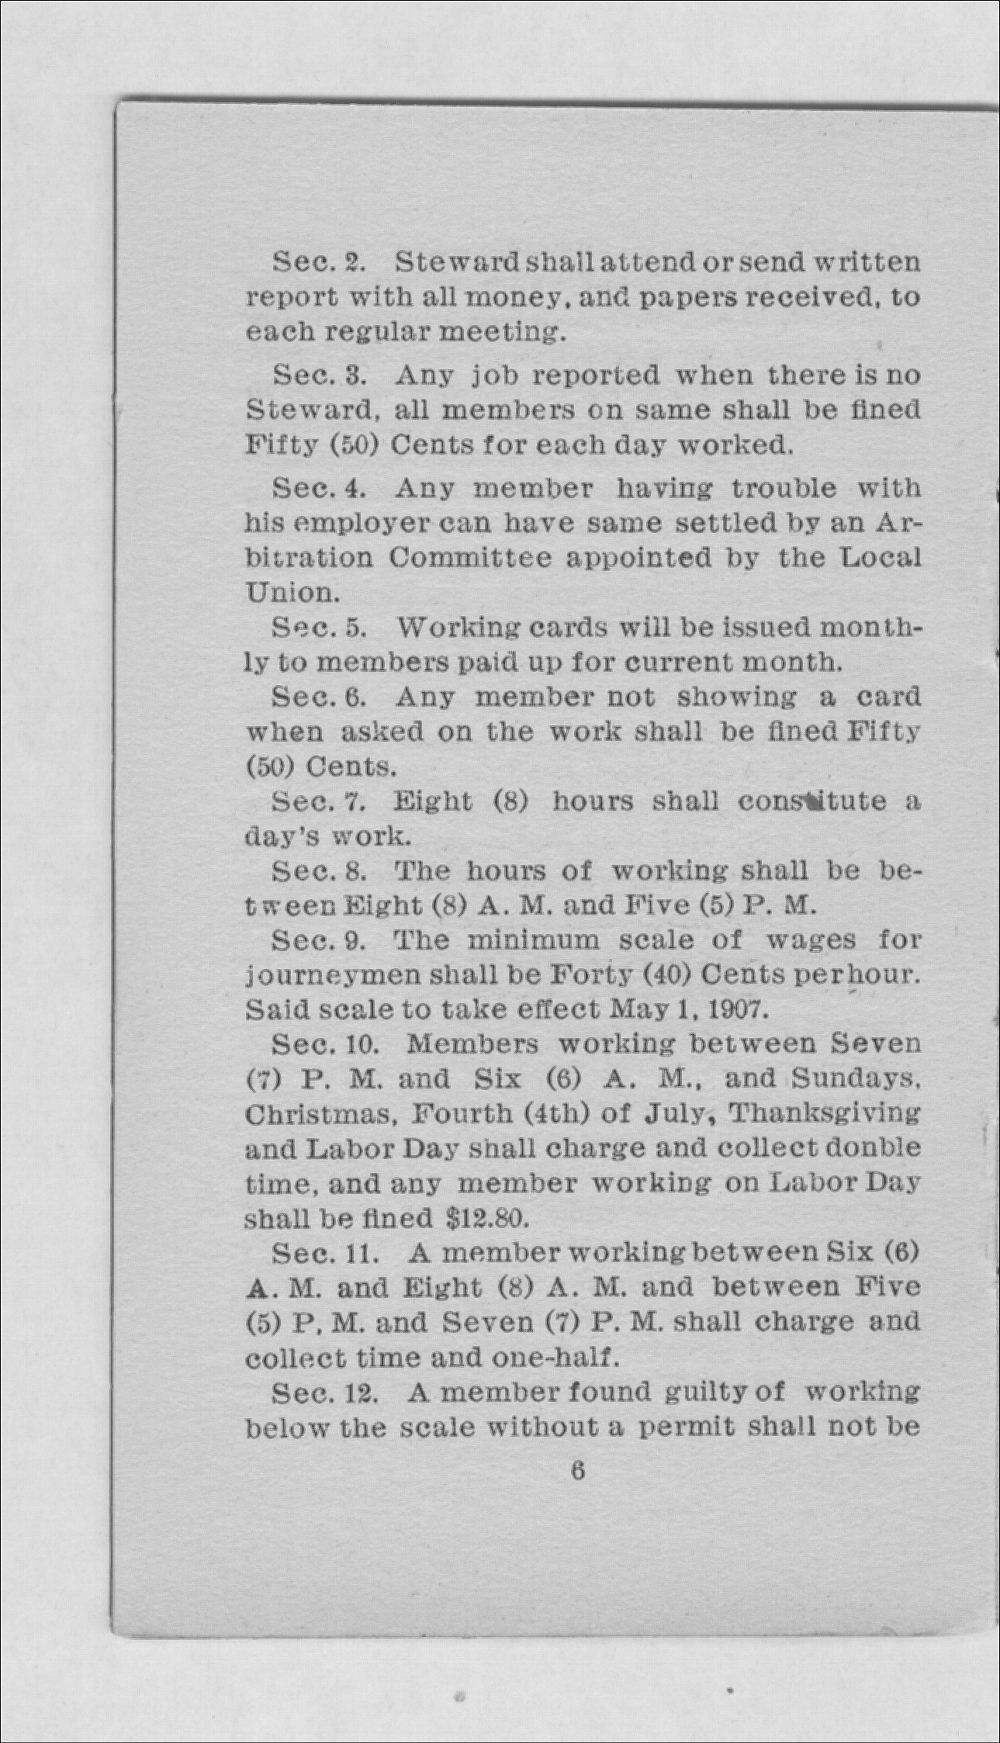 By-laws and trade rules of Carpenter's Union No. 1212 - 6